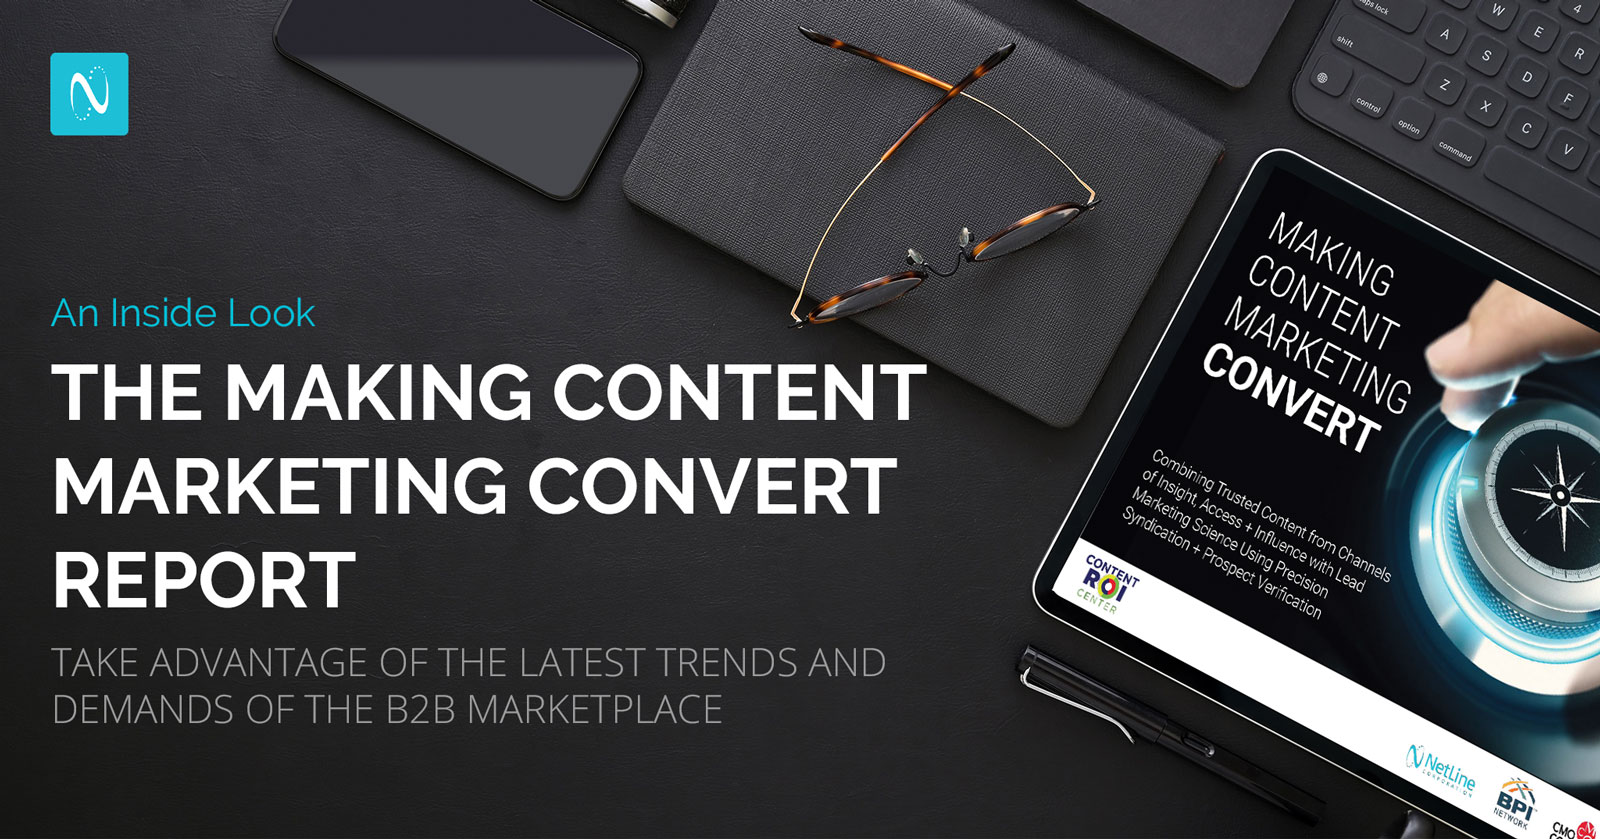 Look closer and discover the 10 things you need to know about making your content marketing convert into leads.